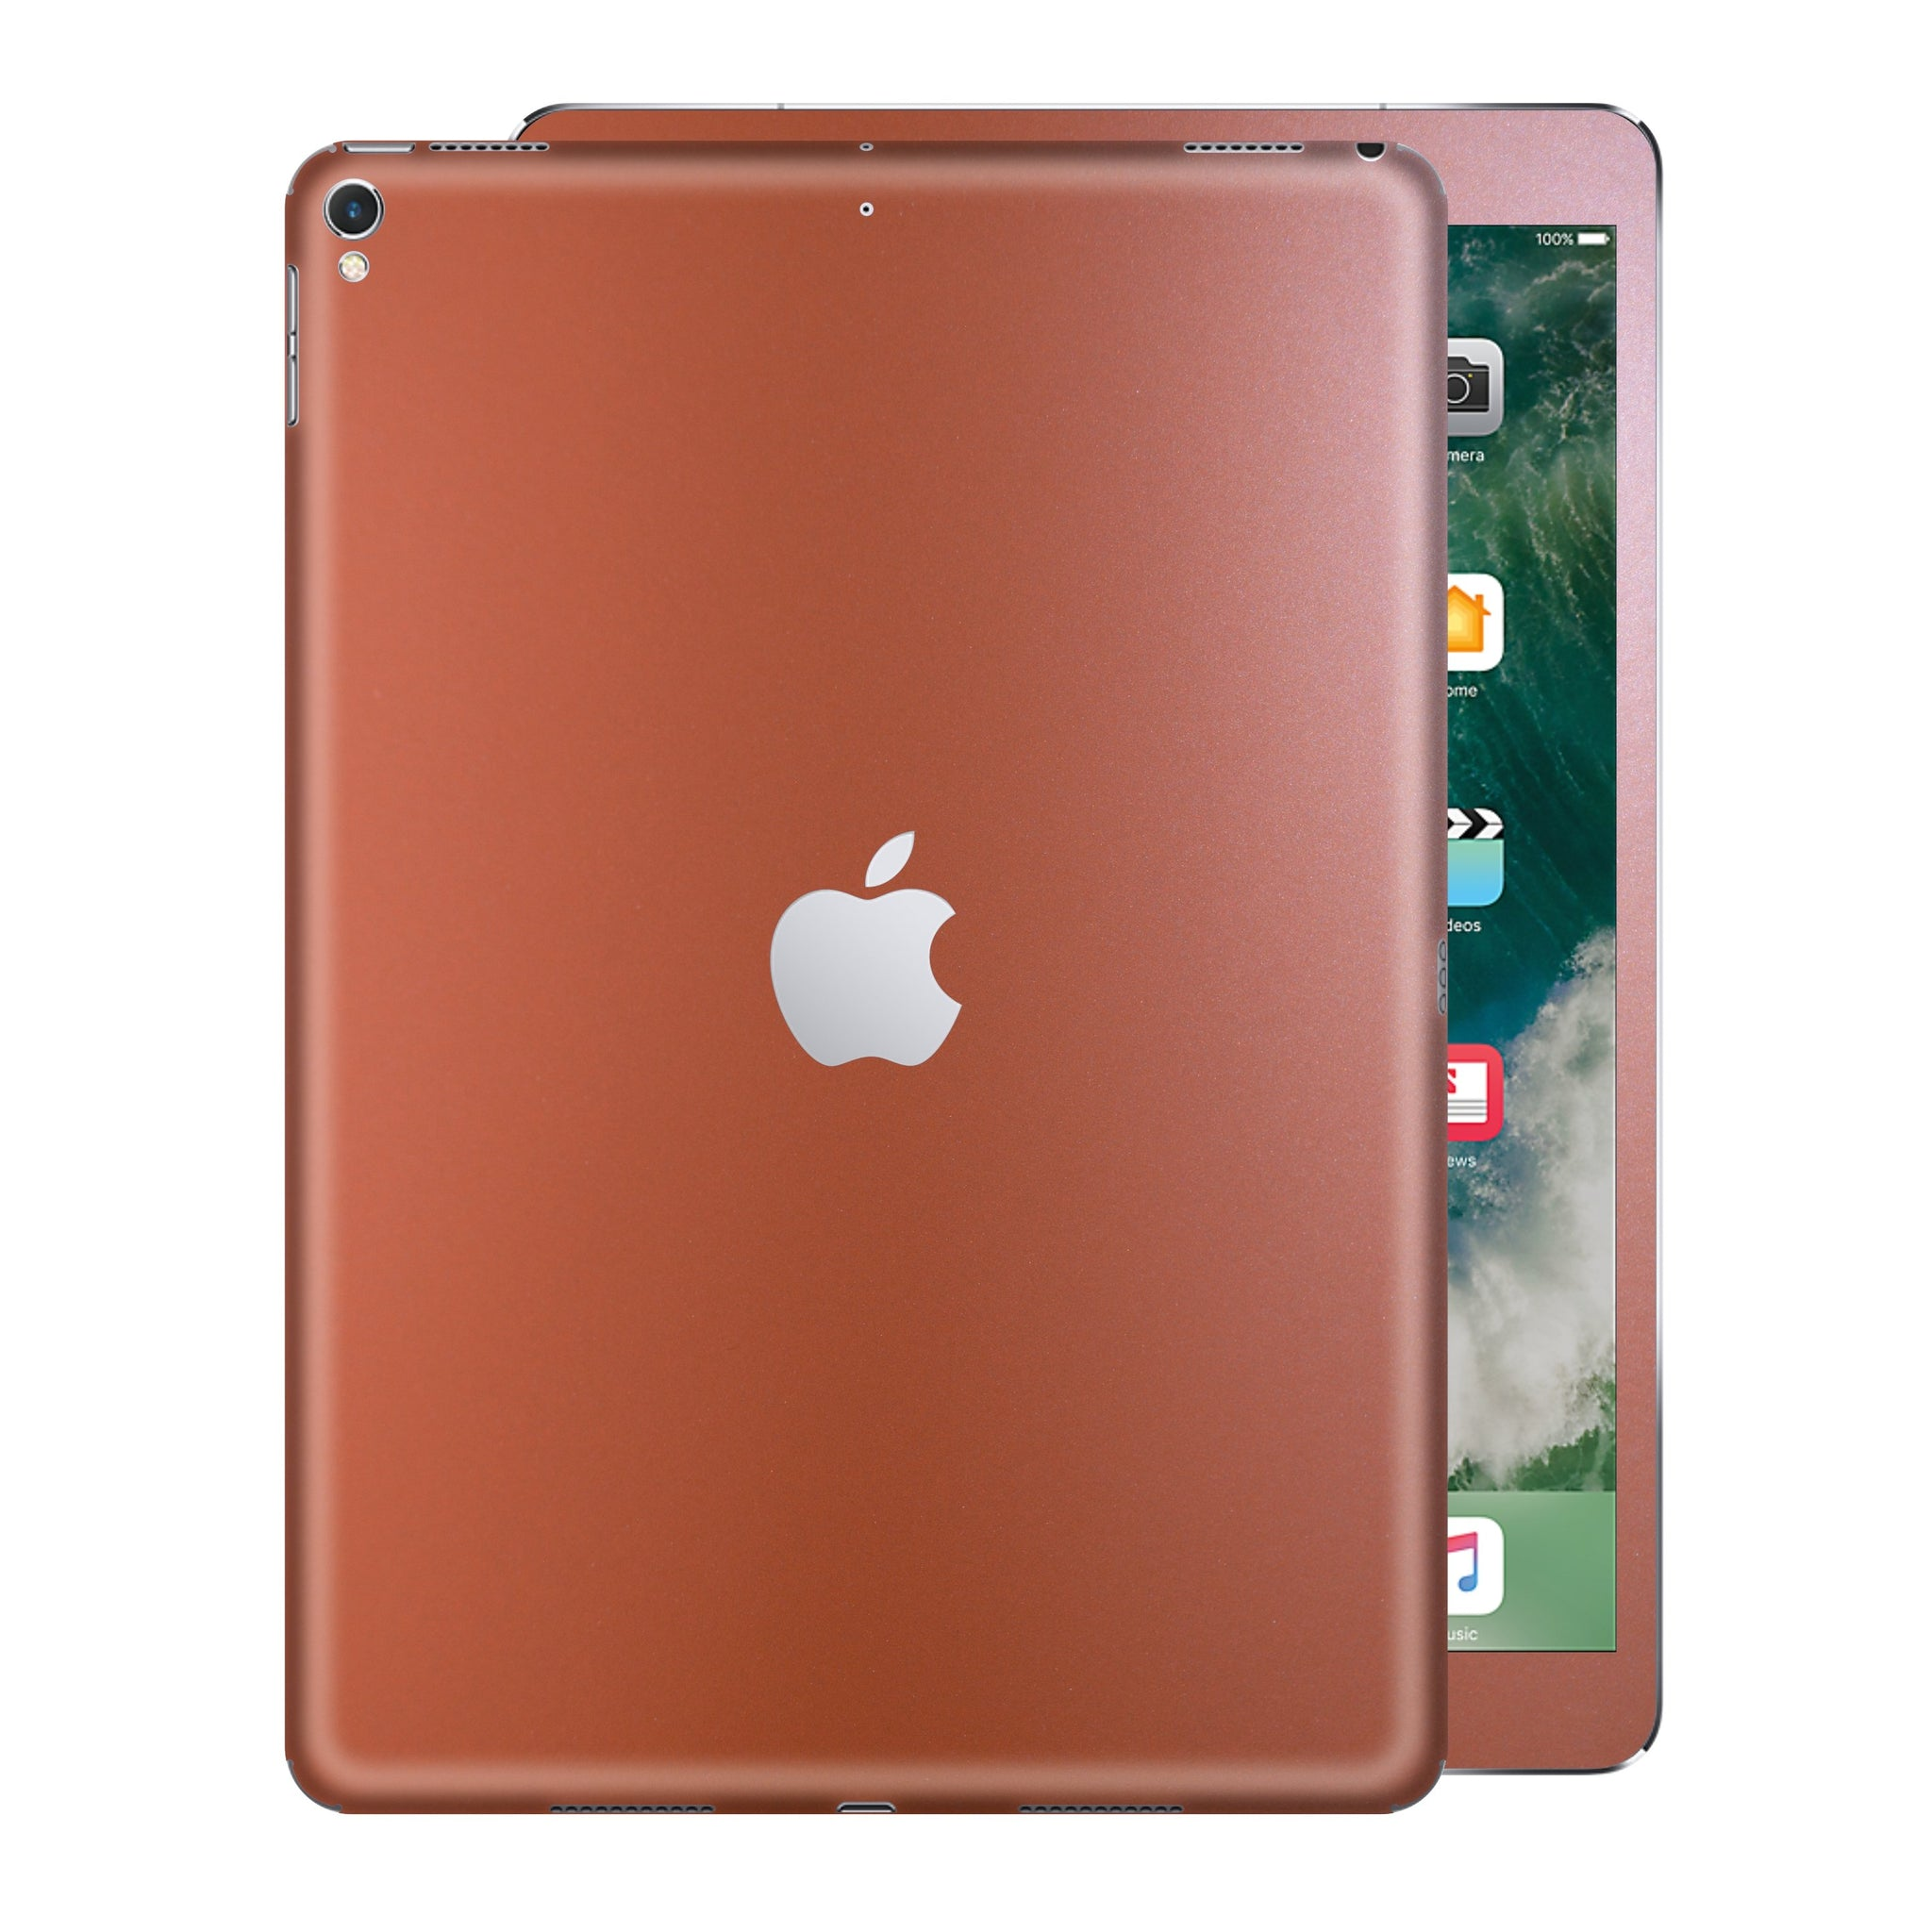 iPad PRO 12.9 inch 2017 Matt Matte Rose Gold Metallic Skin Wrap Sticker Decal Cover Protector by EasySkinz